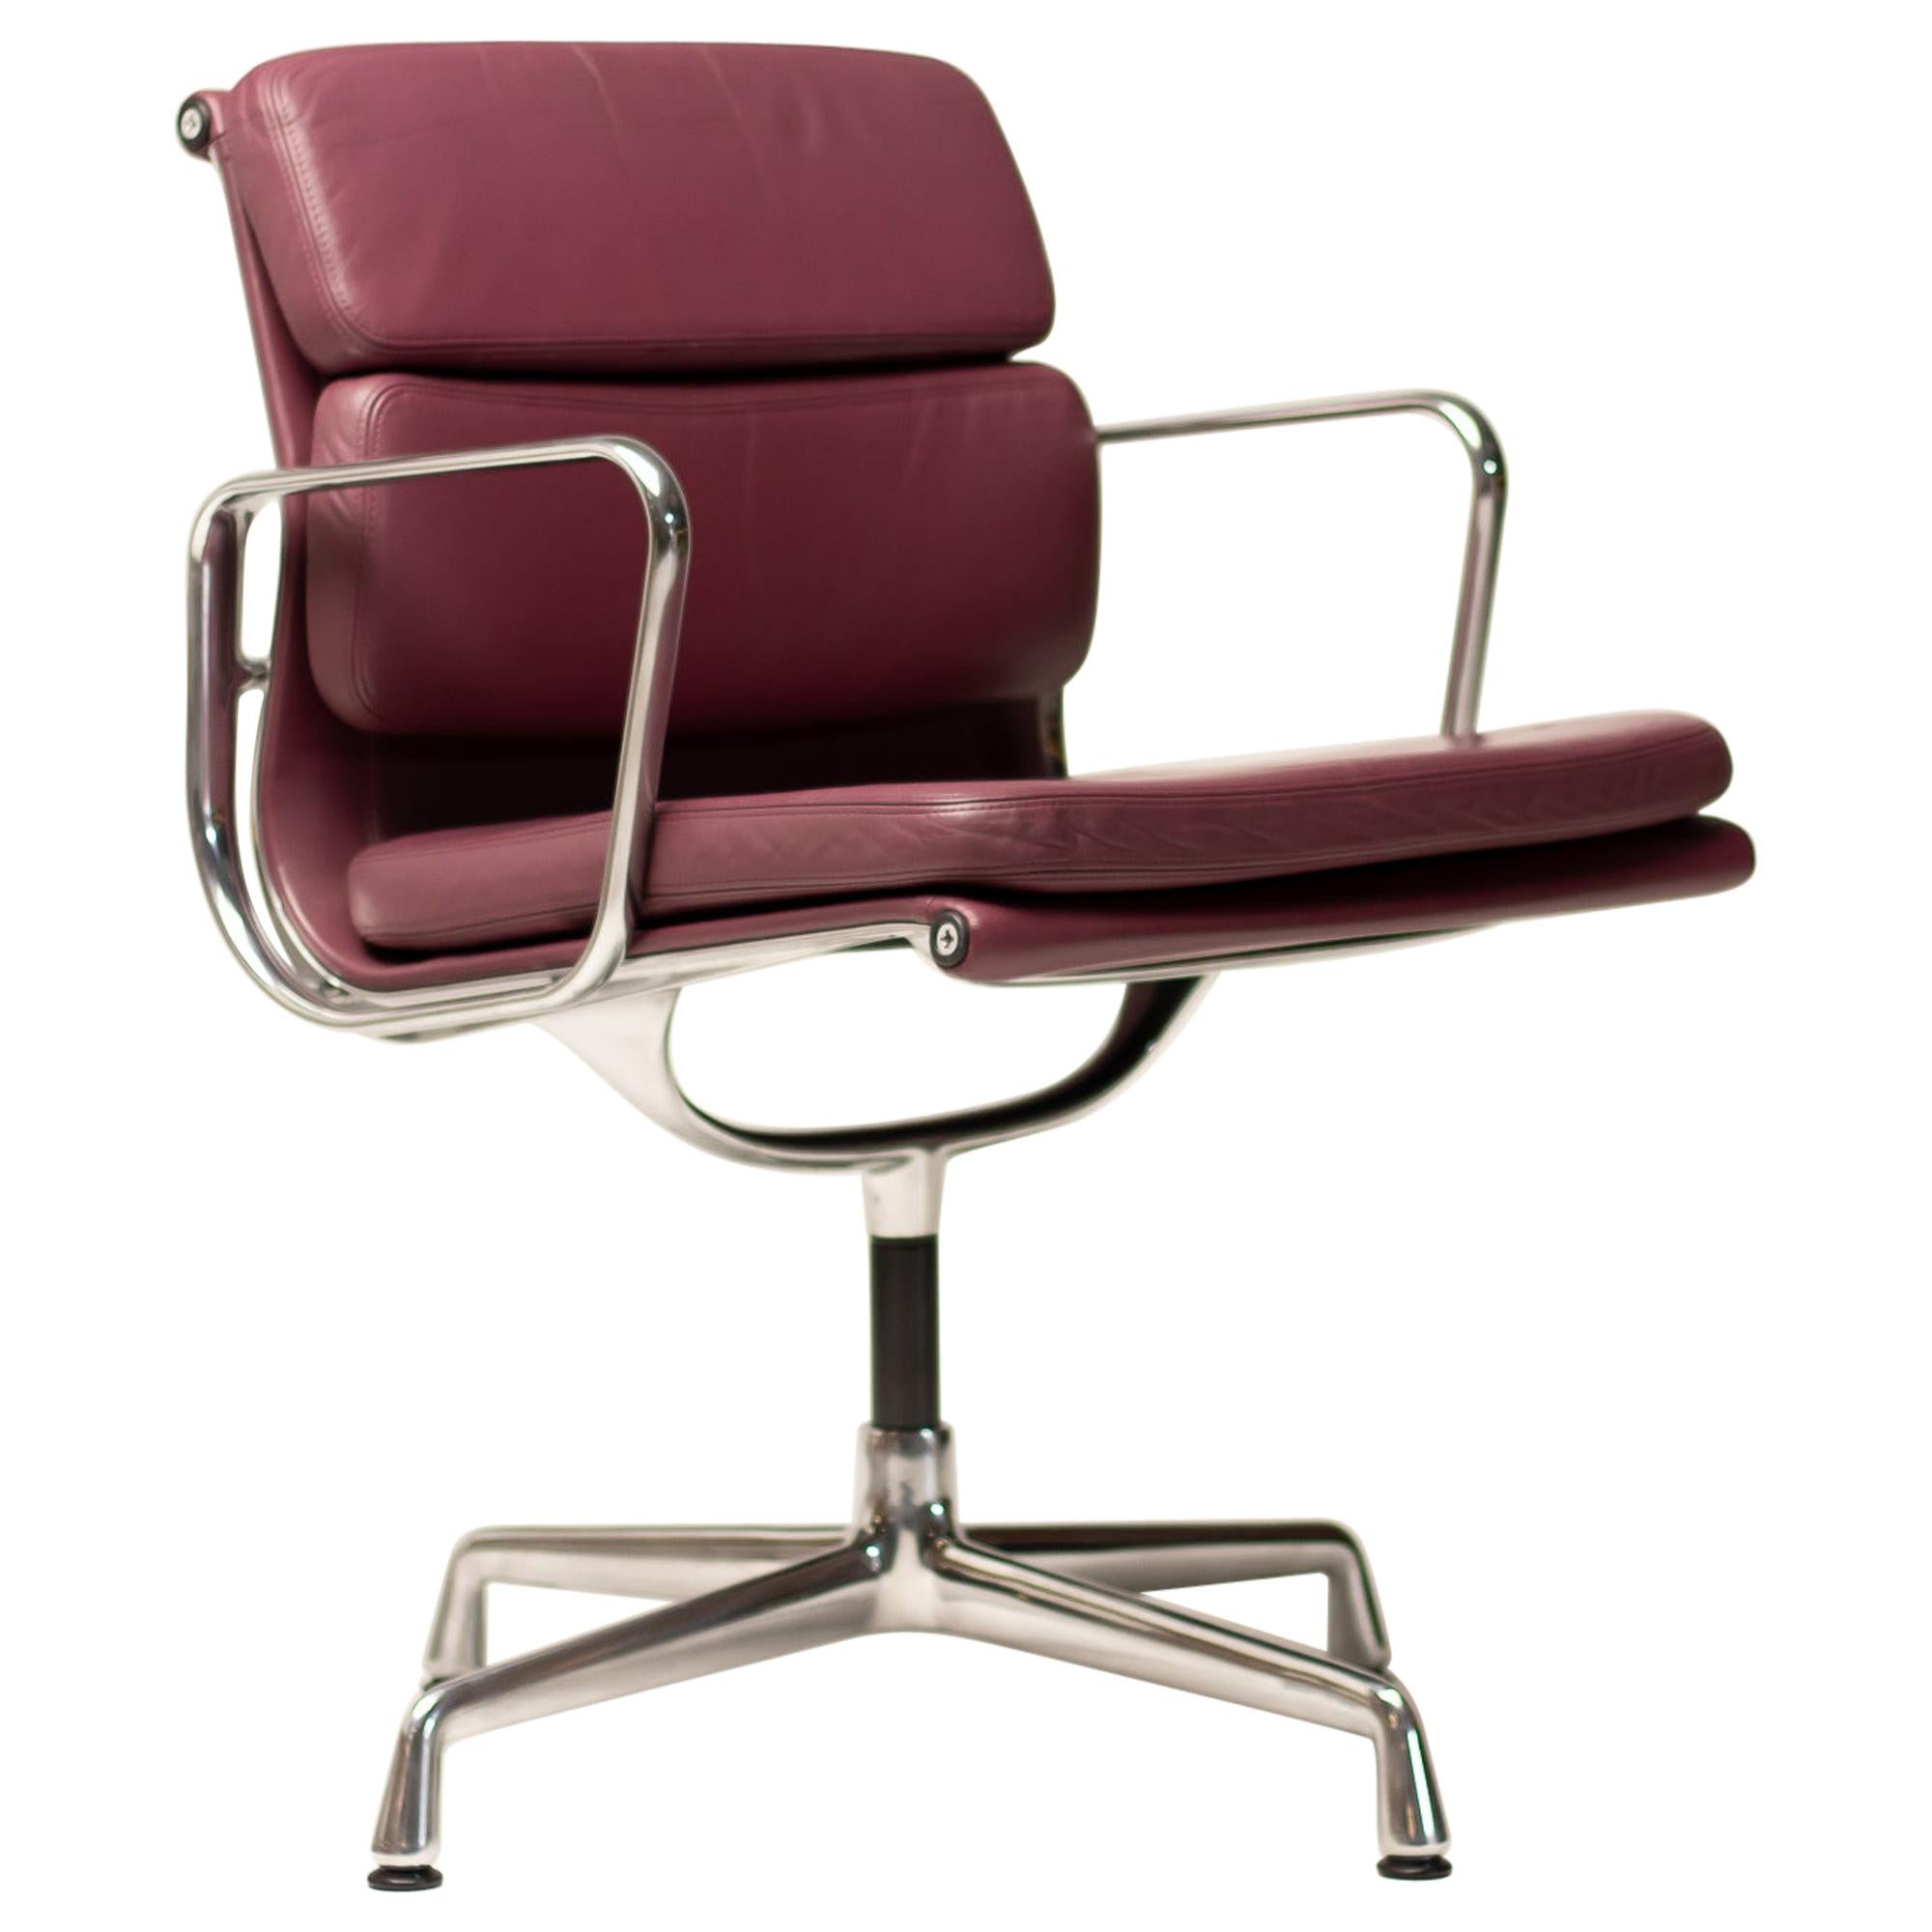 Brandy Leather Soft Pad Chairs by Charles & Ray Eames for Vitra